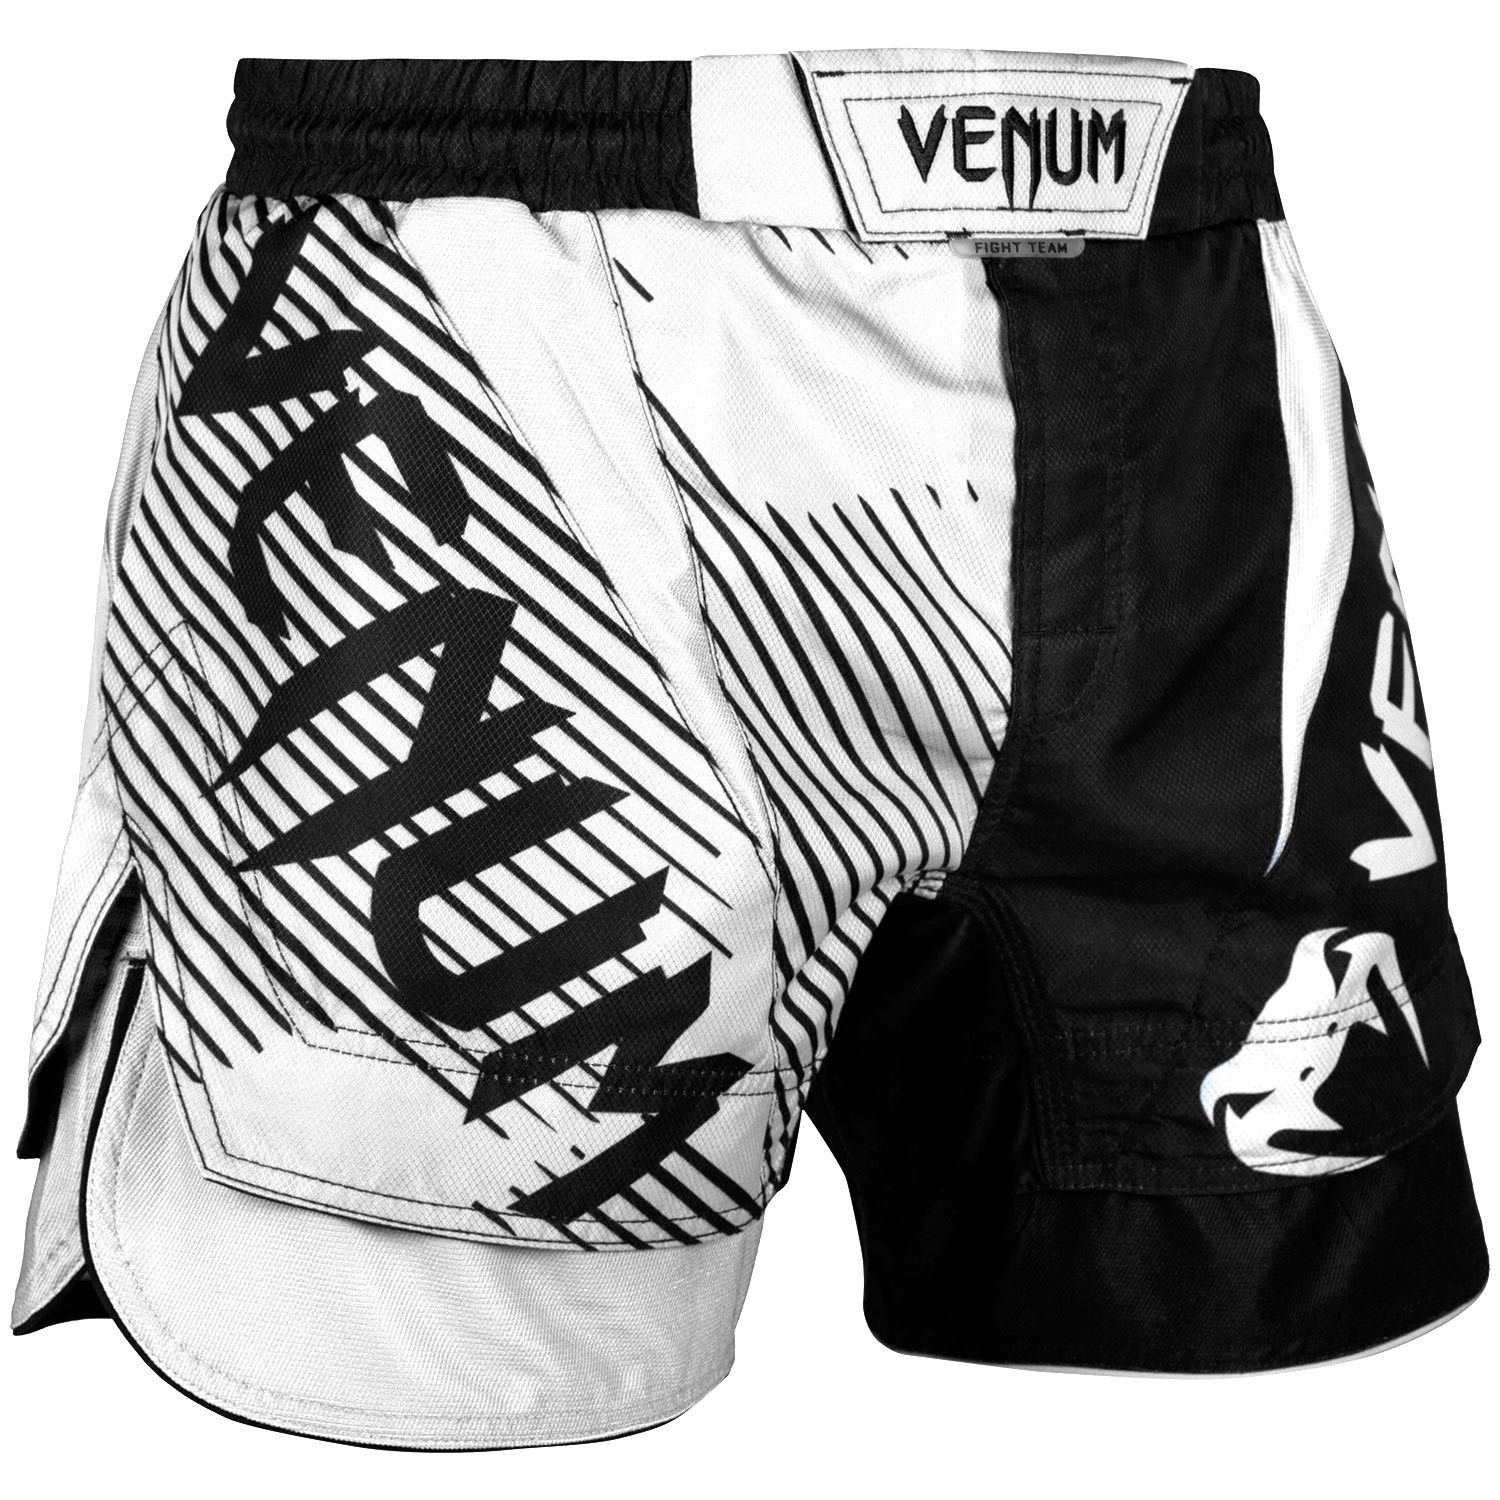 Venum Nogi 2.0 Fightshorts (Black/White)